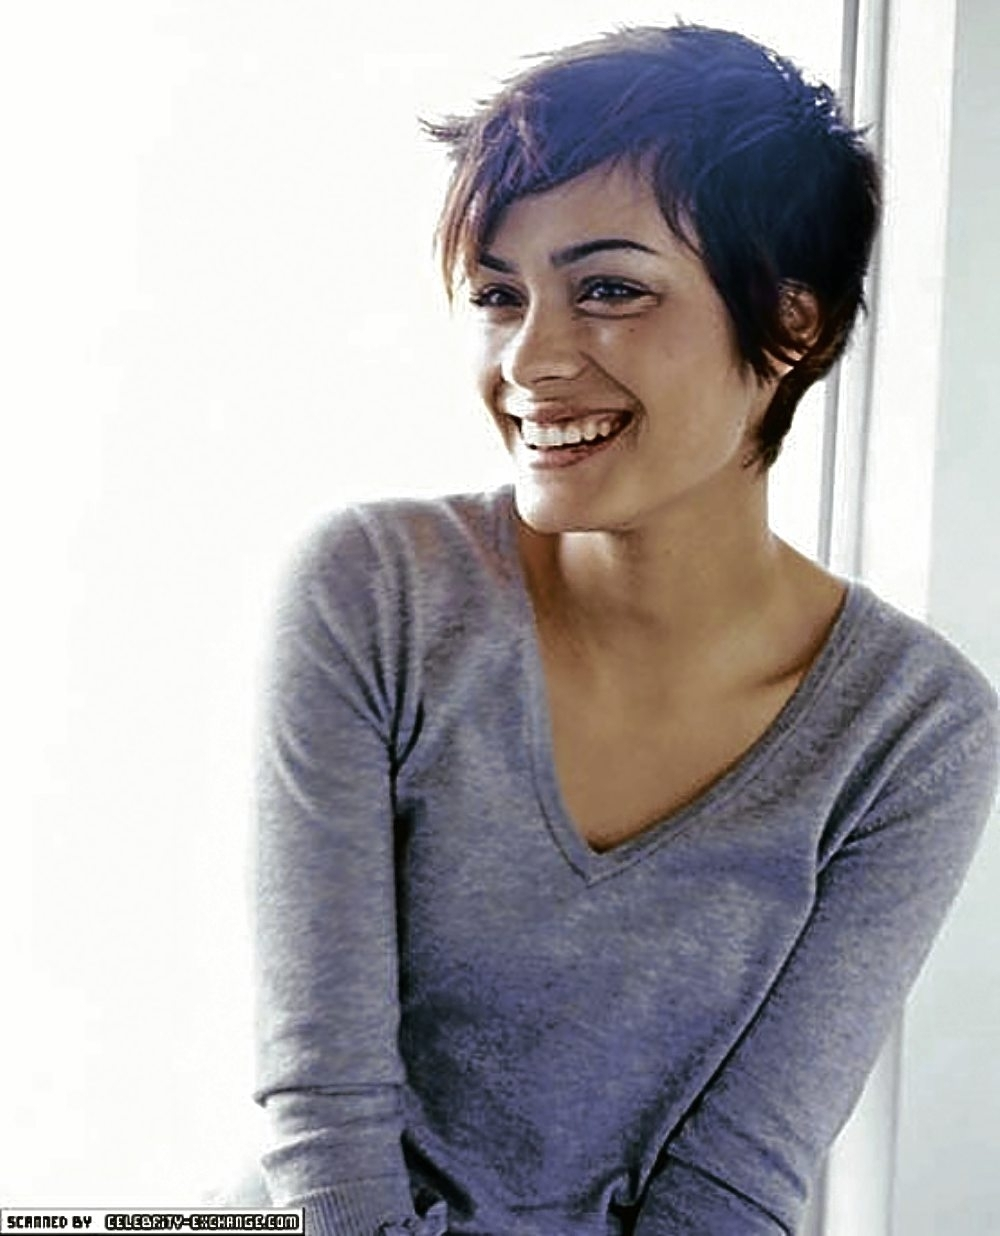 Pixie Haircut For Thick Curly Hair 1000+ Images About Pixie Cut On For Most Current Long Pixie Hairstyles For Curly Hair (View 13 of 15)